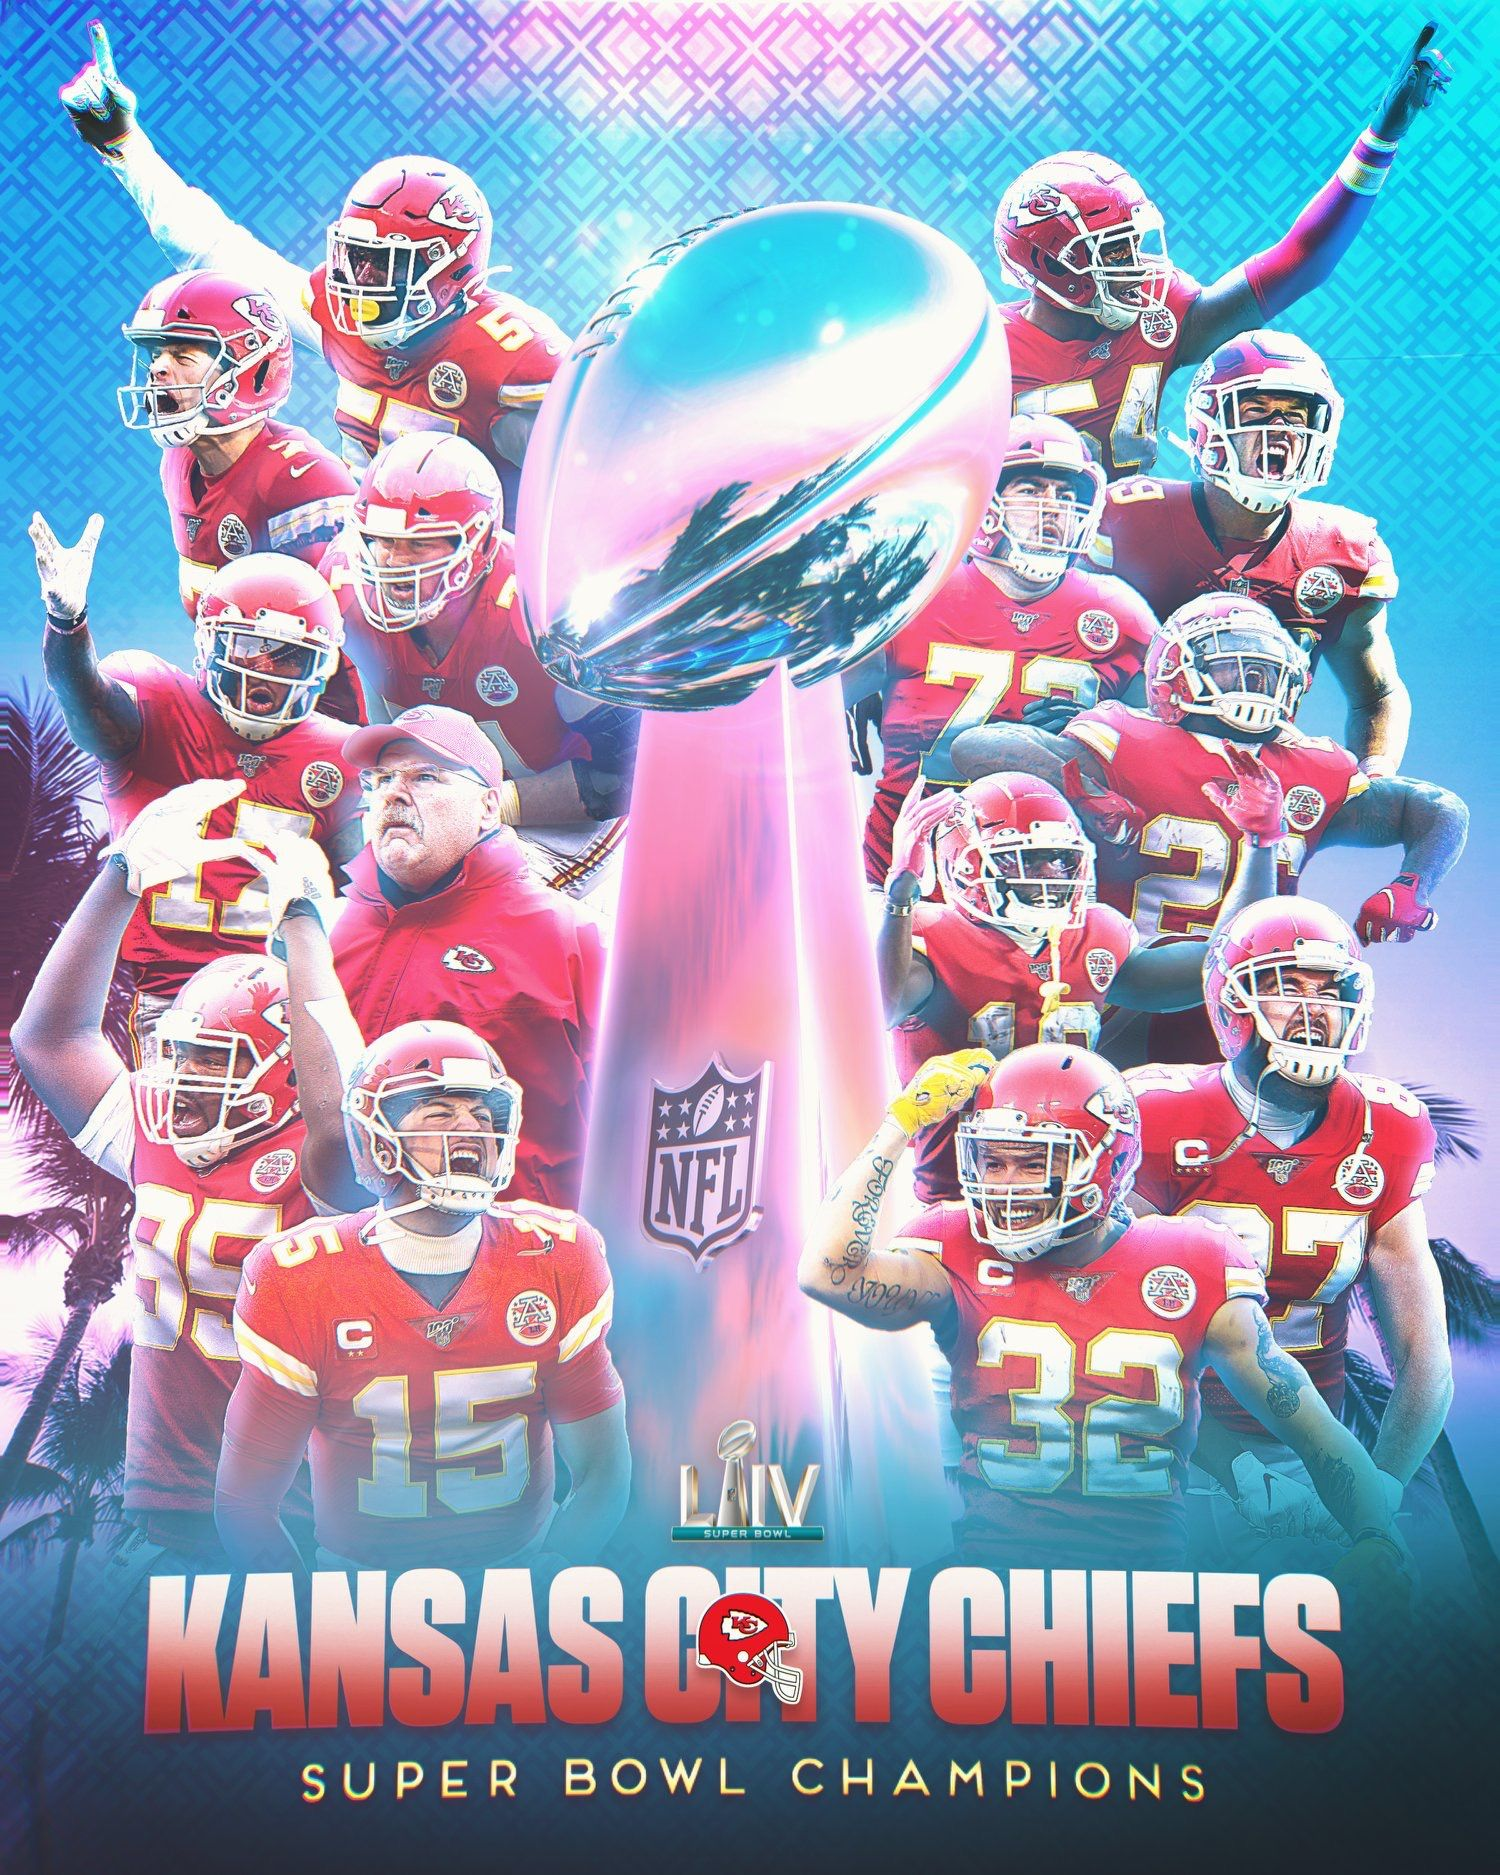 Kansas City Chiefs Super Bowl Liv Champions In 2020 Kansas City Chiefs Logo Chiefs Super Bowl Kansas City Chiefs Football